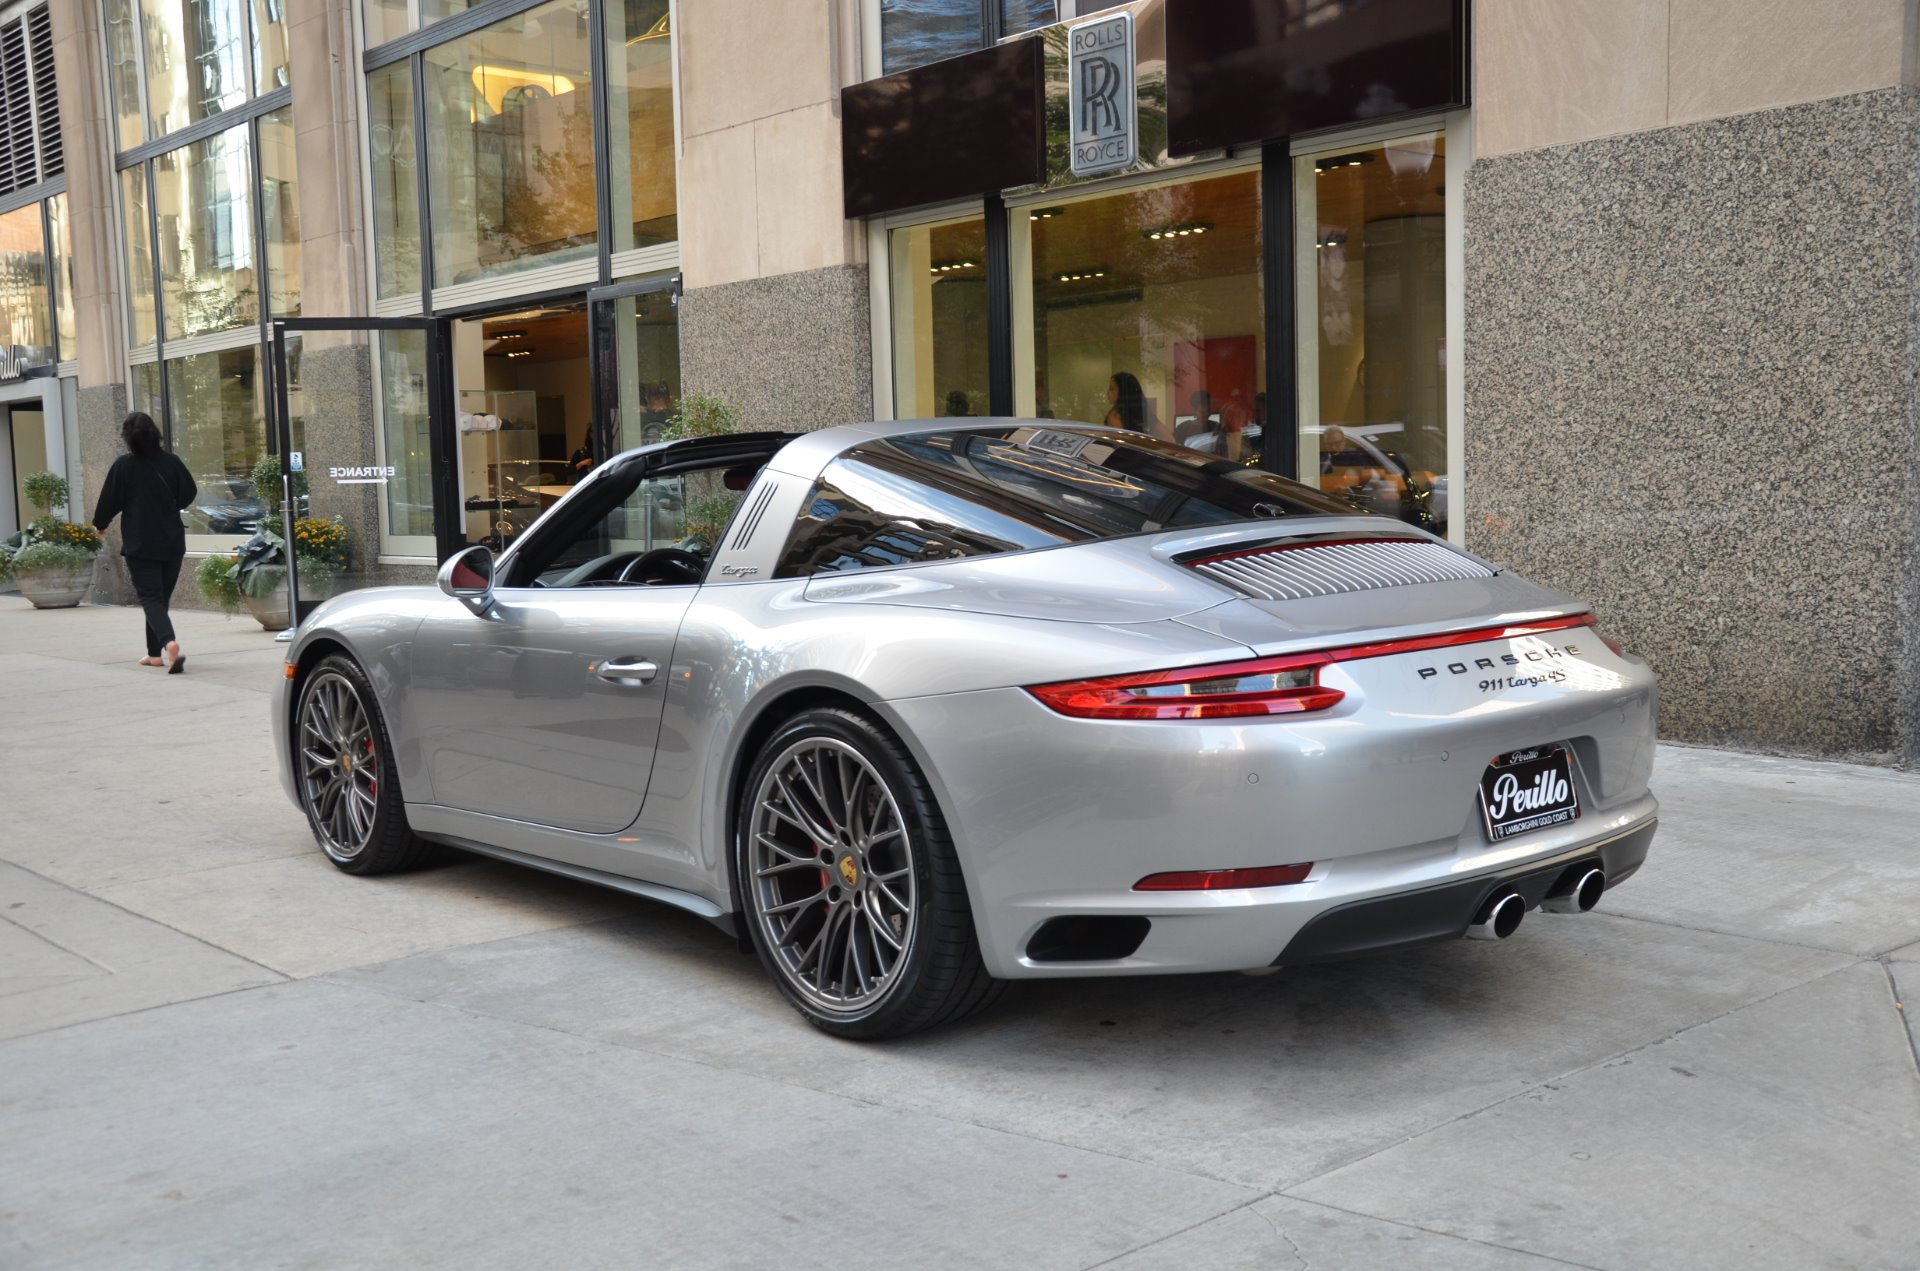 2017 Porsche 911 Targa 4s Stock L304ab For Sale Near